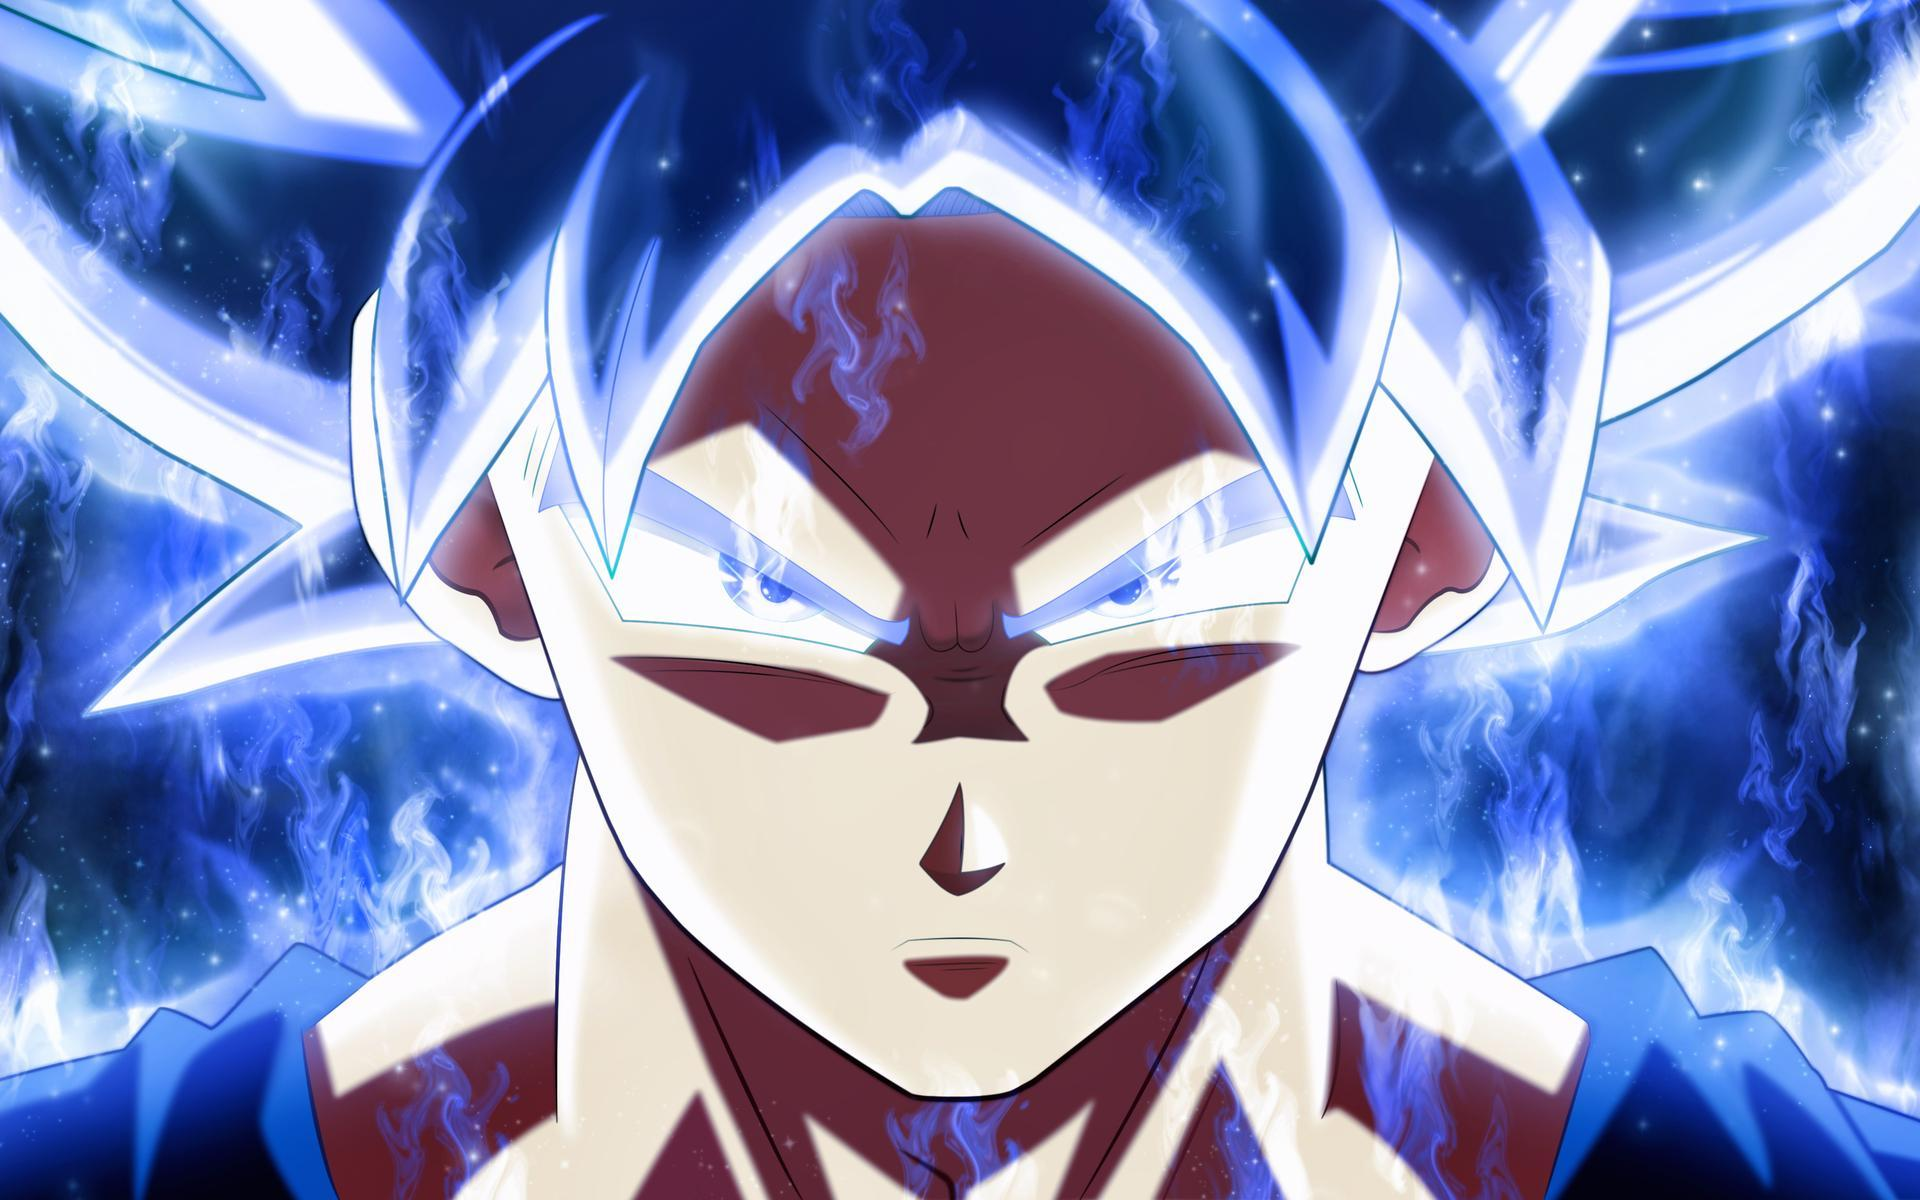 Goku Wallpaper Goku Vegeta Dragon Ball 4k Gif Für